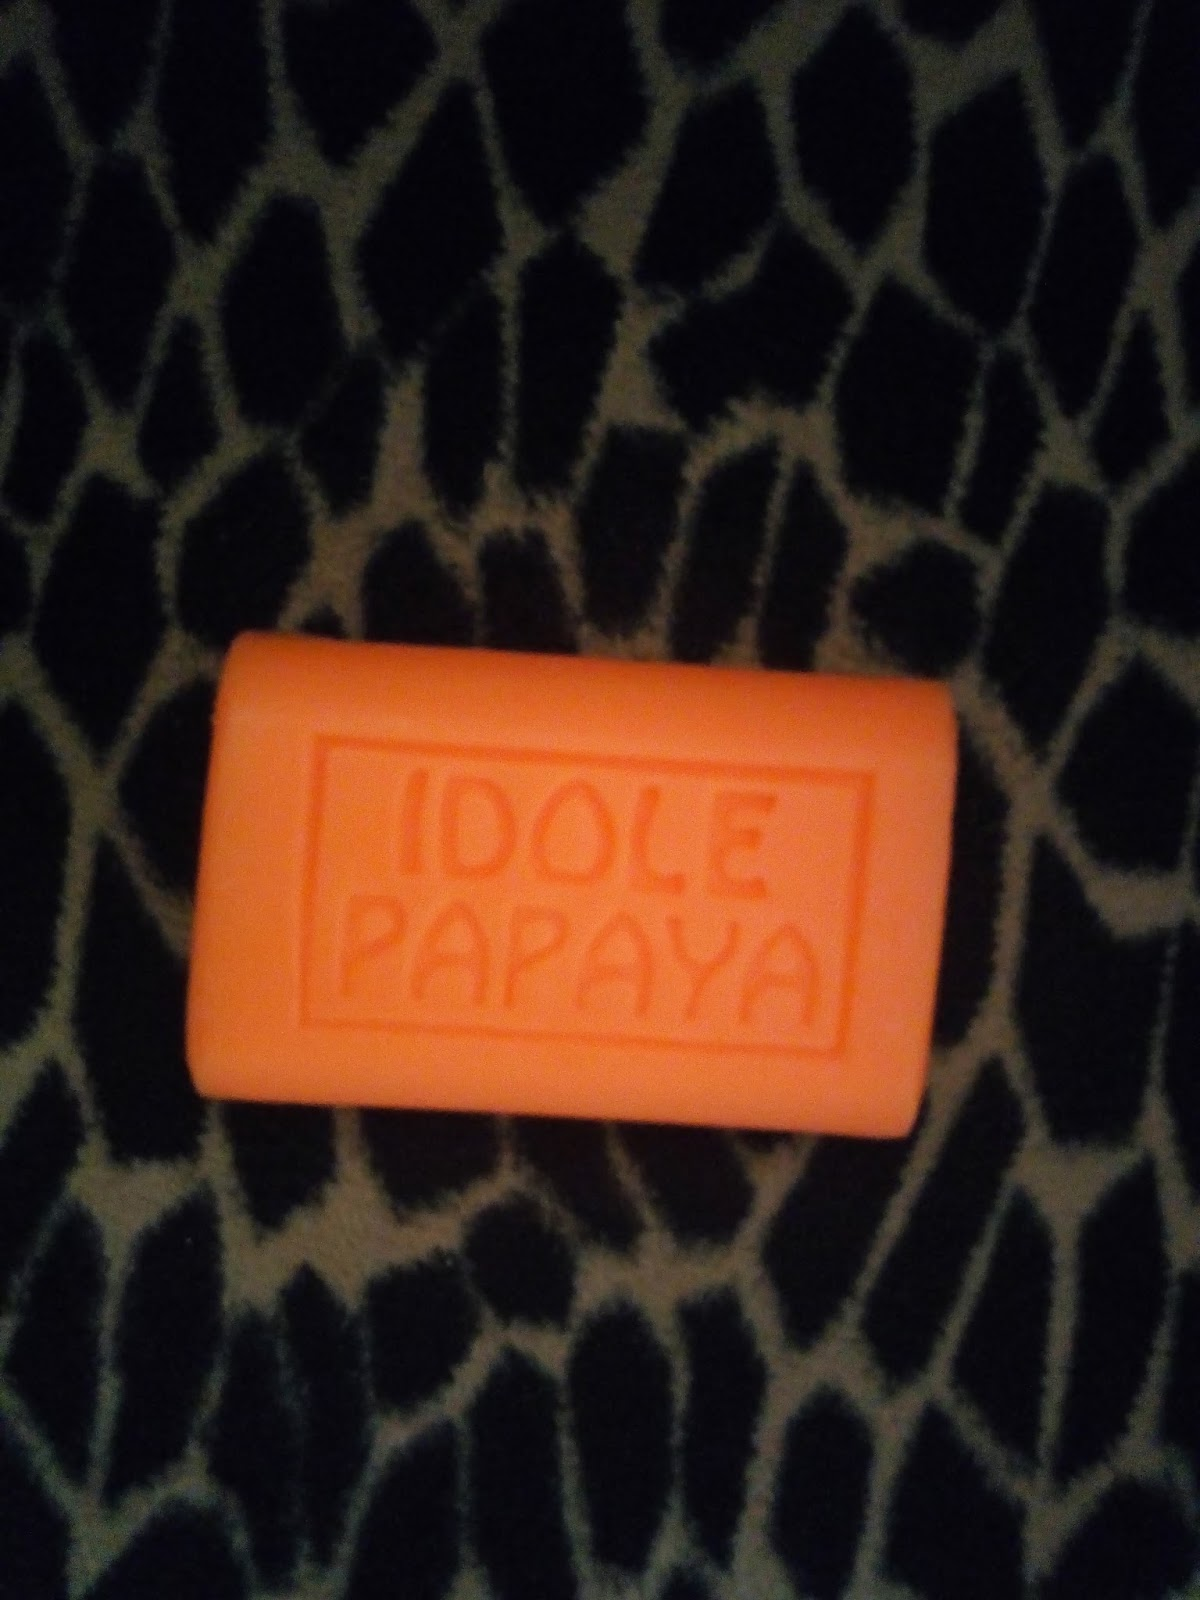 idole papaya whitening soap reviews, idole papaya lightening soap, idole papaya whitening facial soap, idole papaya whitening facial soap reviews, idole papaya whitening soap, about idole papaya whitening facial soap, reviews on idole papaya whitening facial soap, ilookdope.com, chris konor